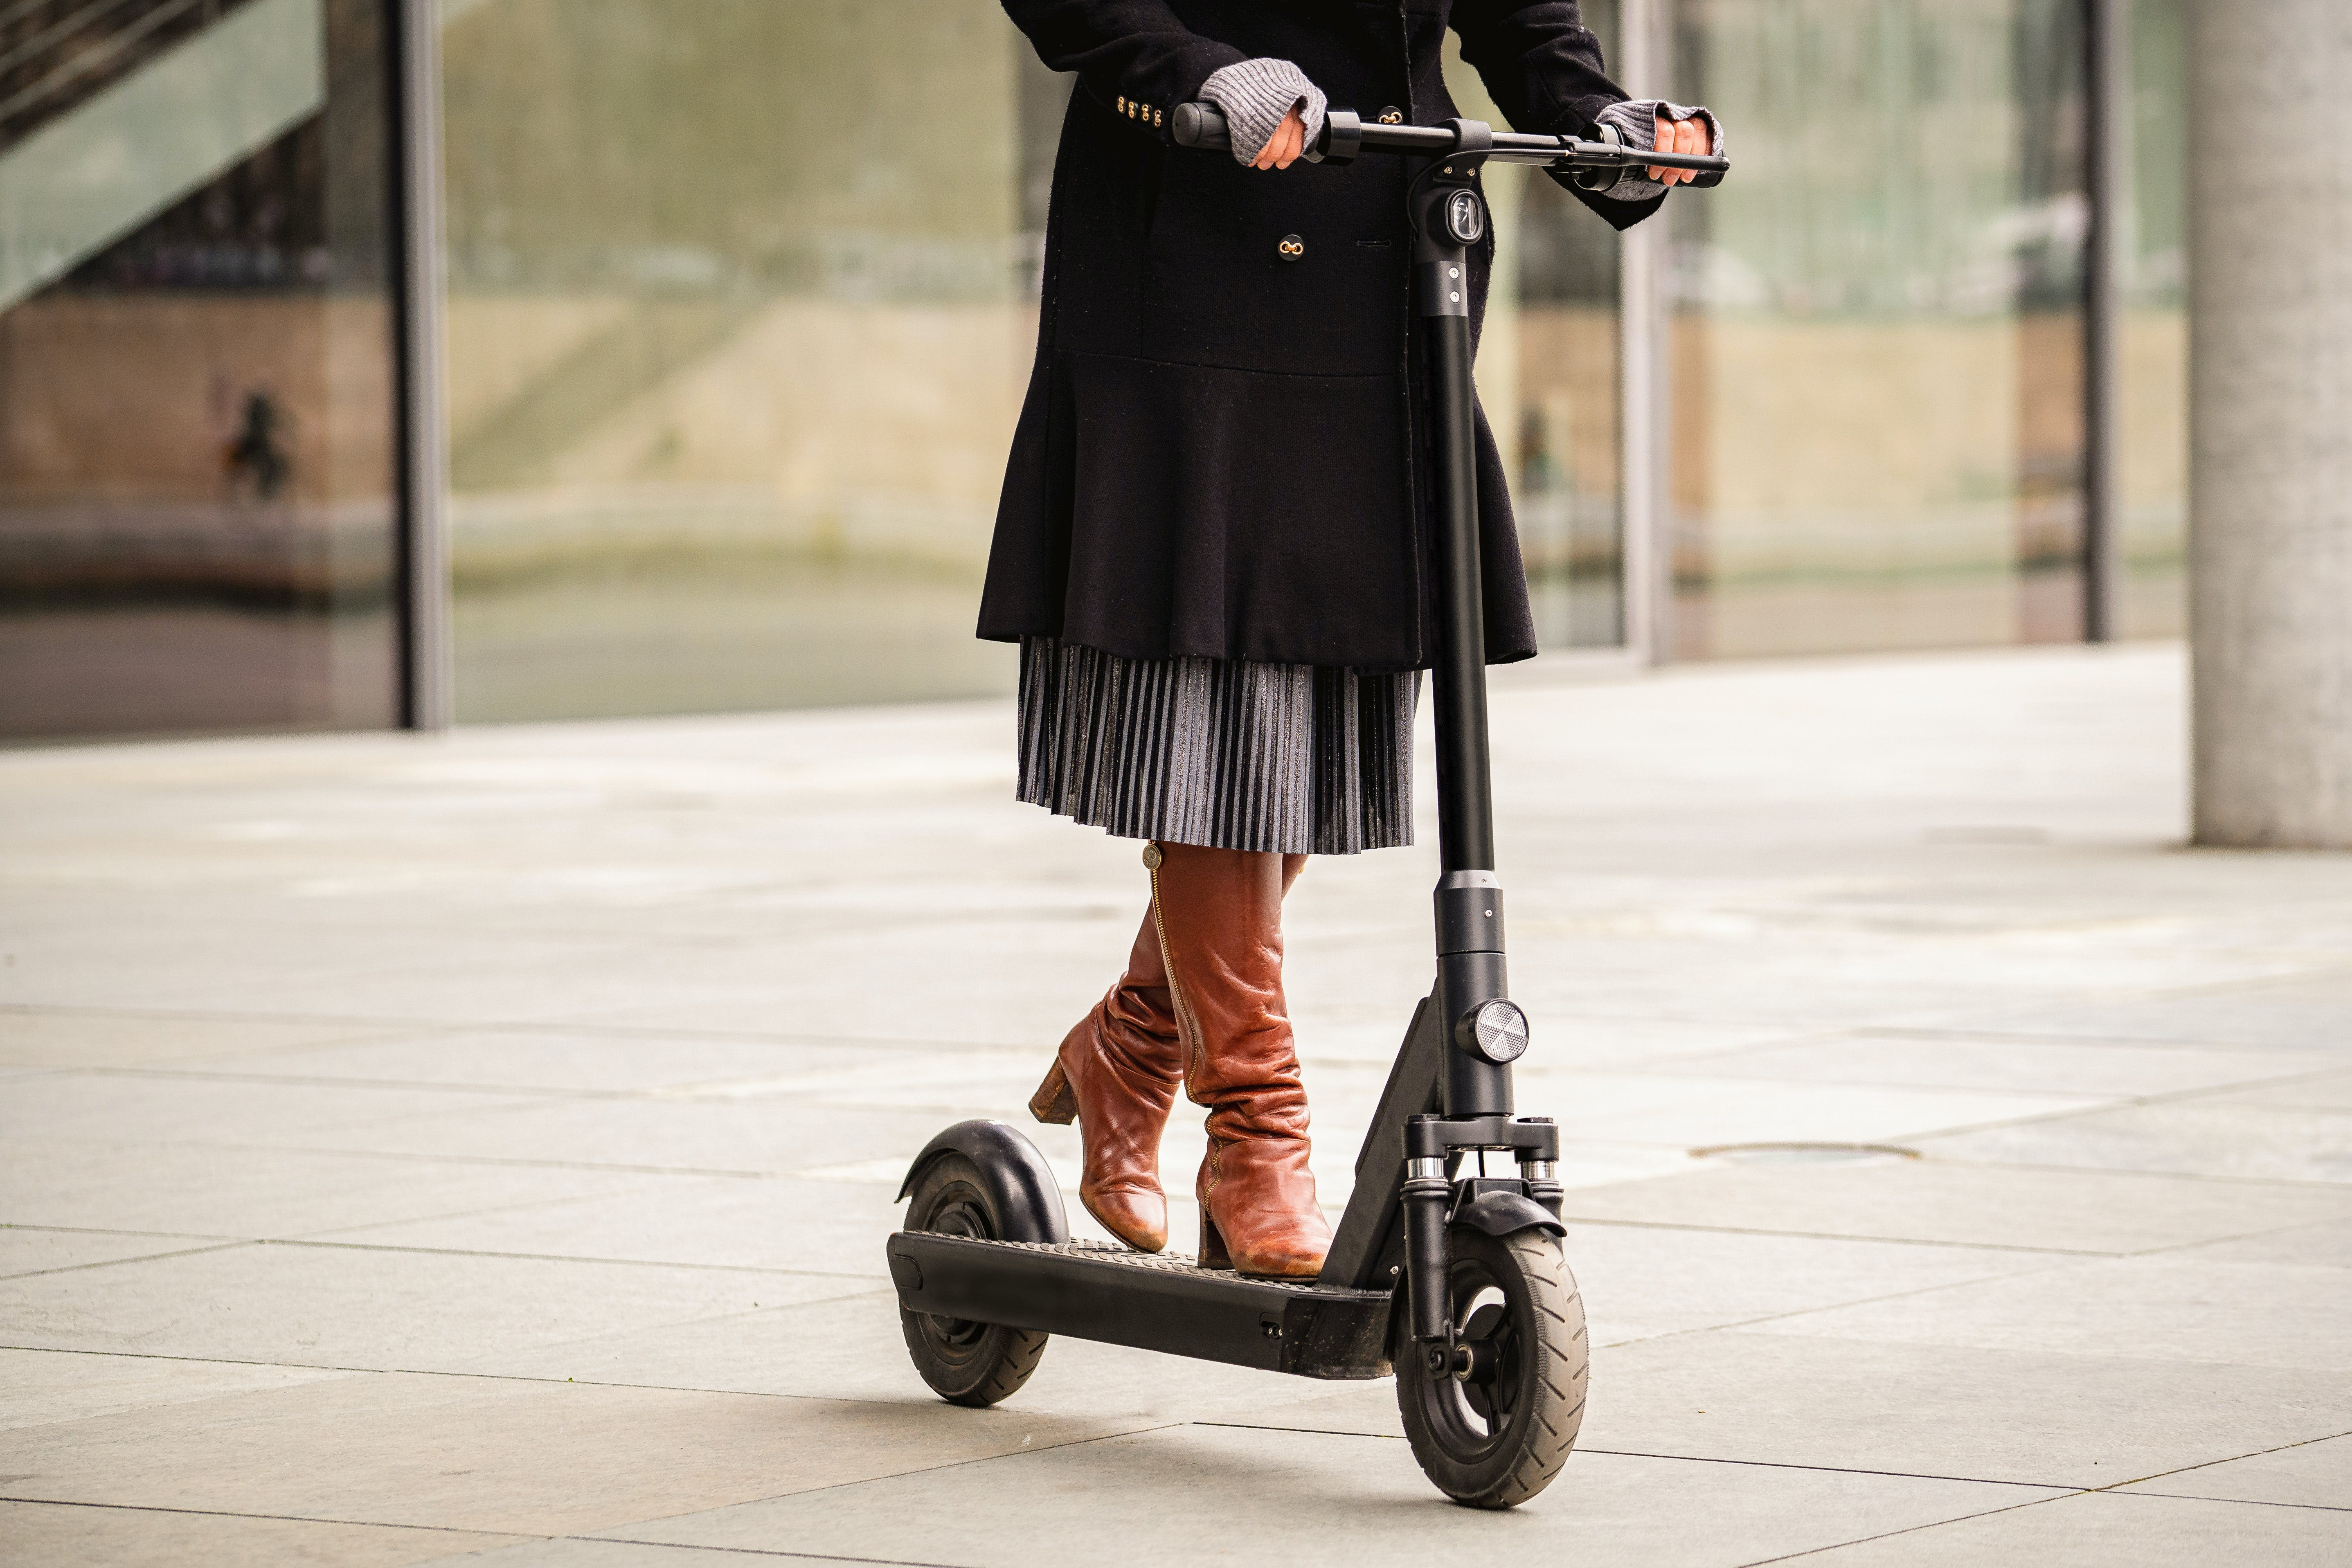 An example of an e-scooter powered by an electric motor.